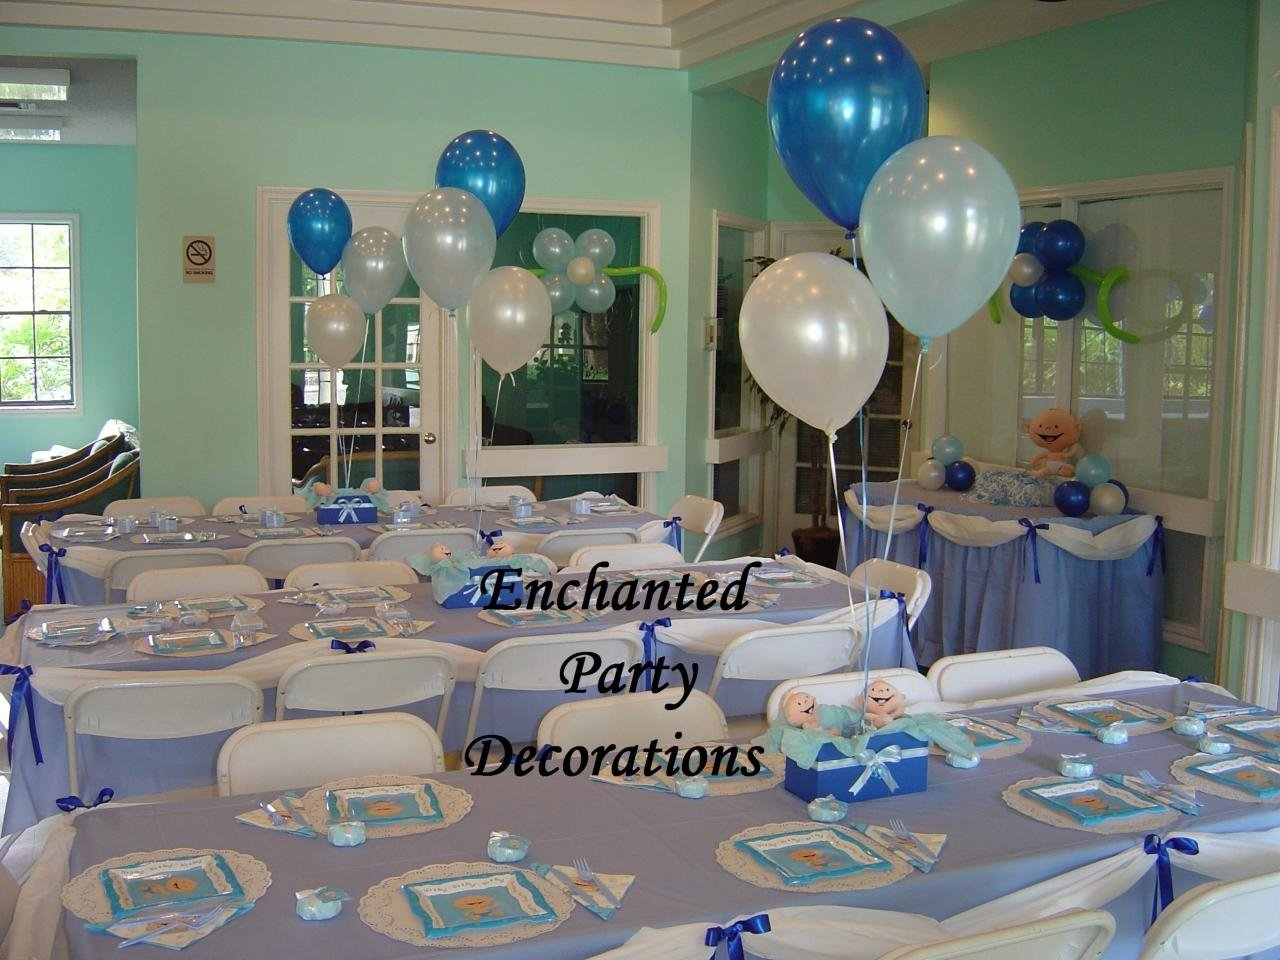 10 Attractive Decorating Ideas For A Baby Shower baby shower ideas table decorations homes alternative 58195 1 2021